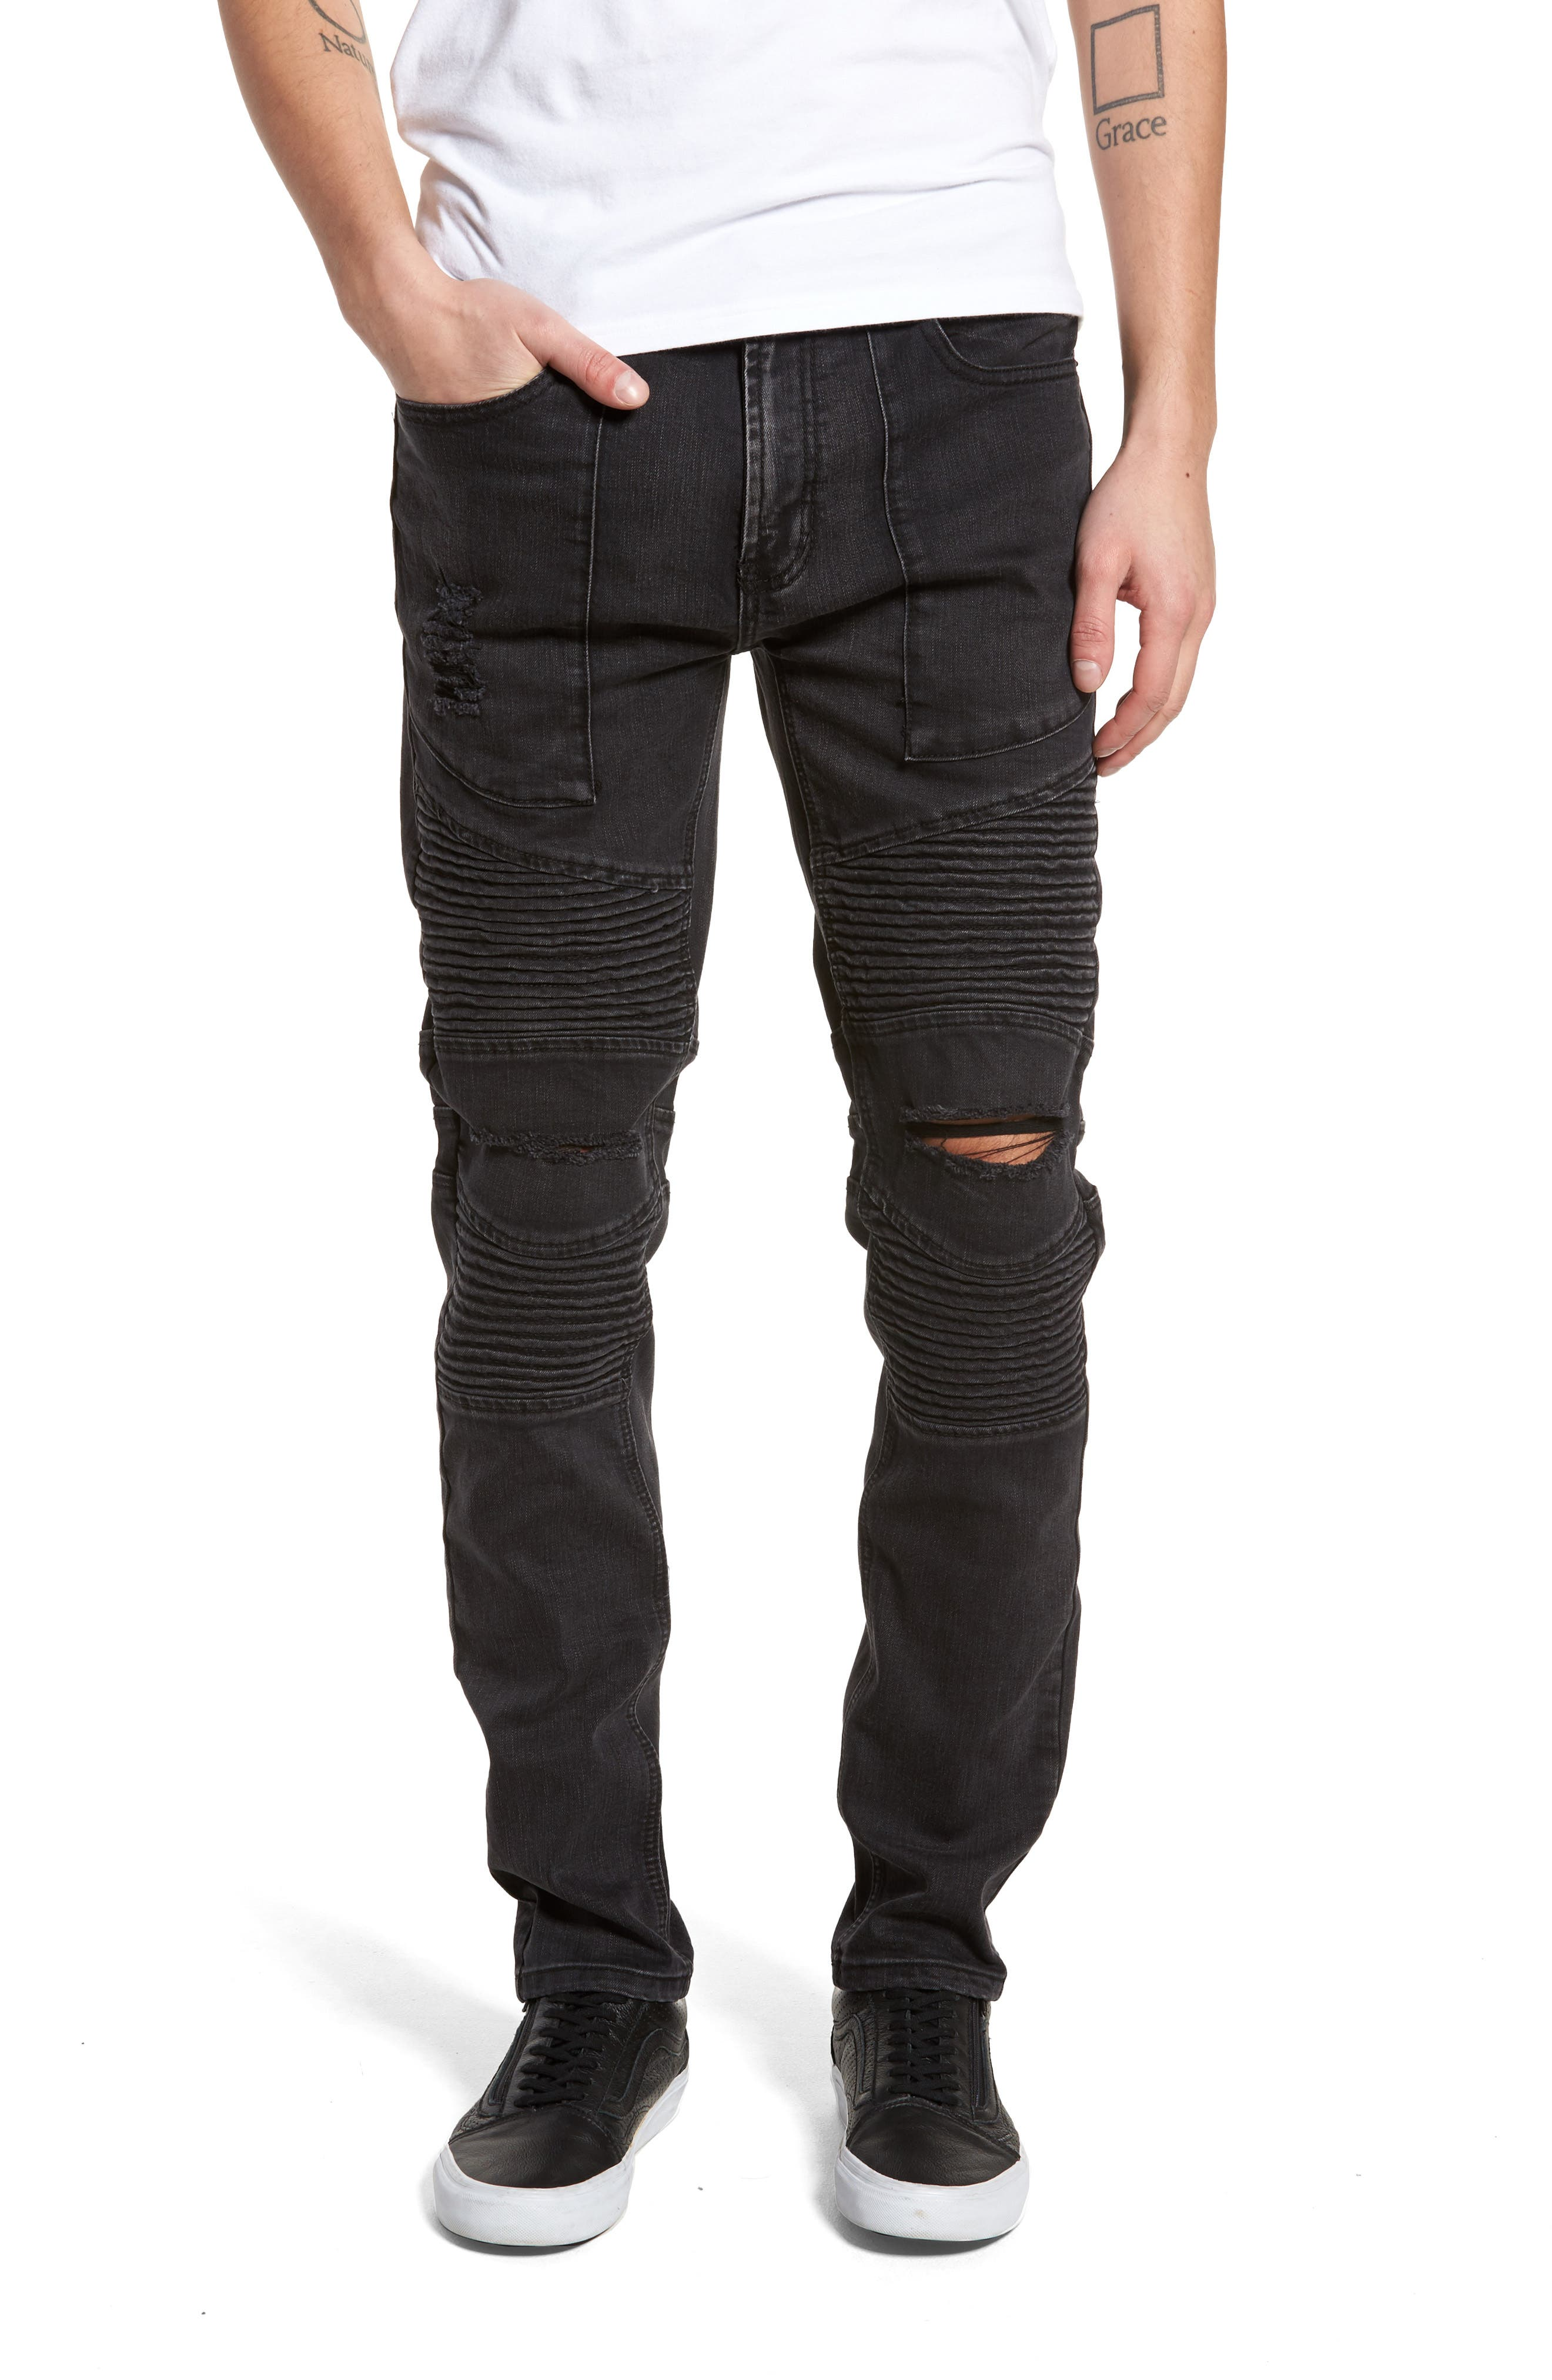 Baxter Ripped Jeans,                             Main thumbnail 1, color,                             Faded Black